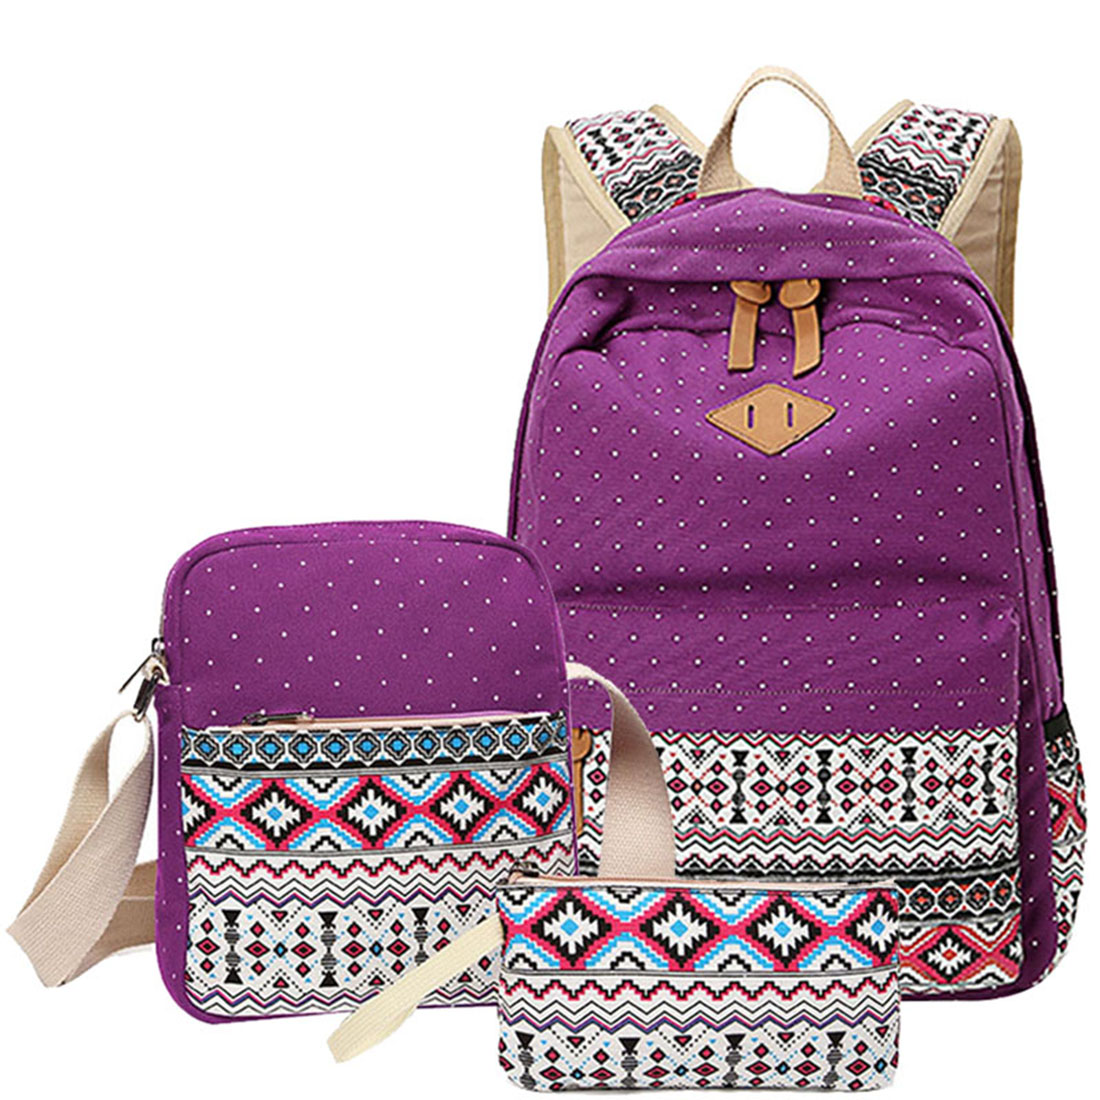 3 pcs/set Polka Dot Printing Women Backpack Cute Lightweight Canvas Bookbags Middle High School Bags for Teenage Girls, Purple feger 2018 new fashion genuine leather men bag famous brand shoulder bag messenger bags causal handbag laptop briefcase male